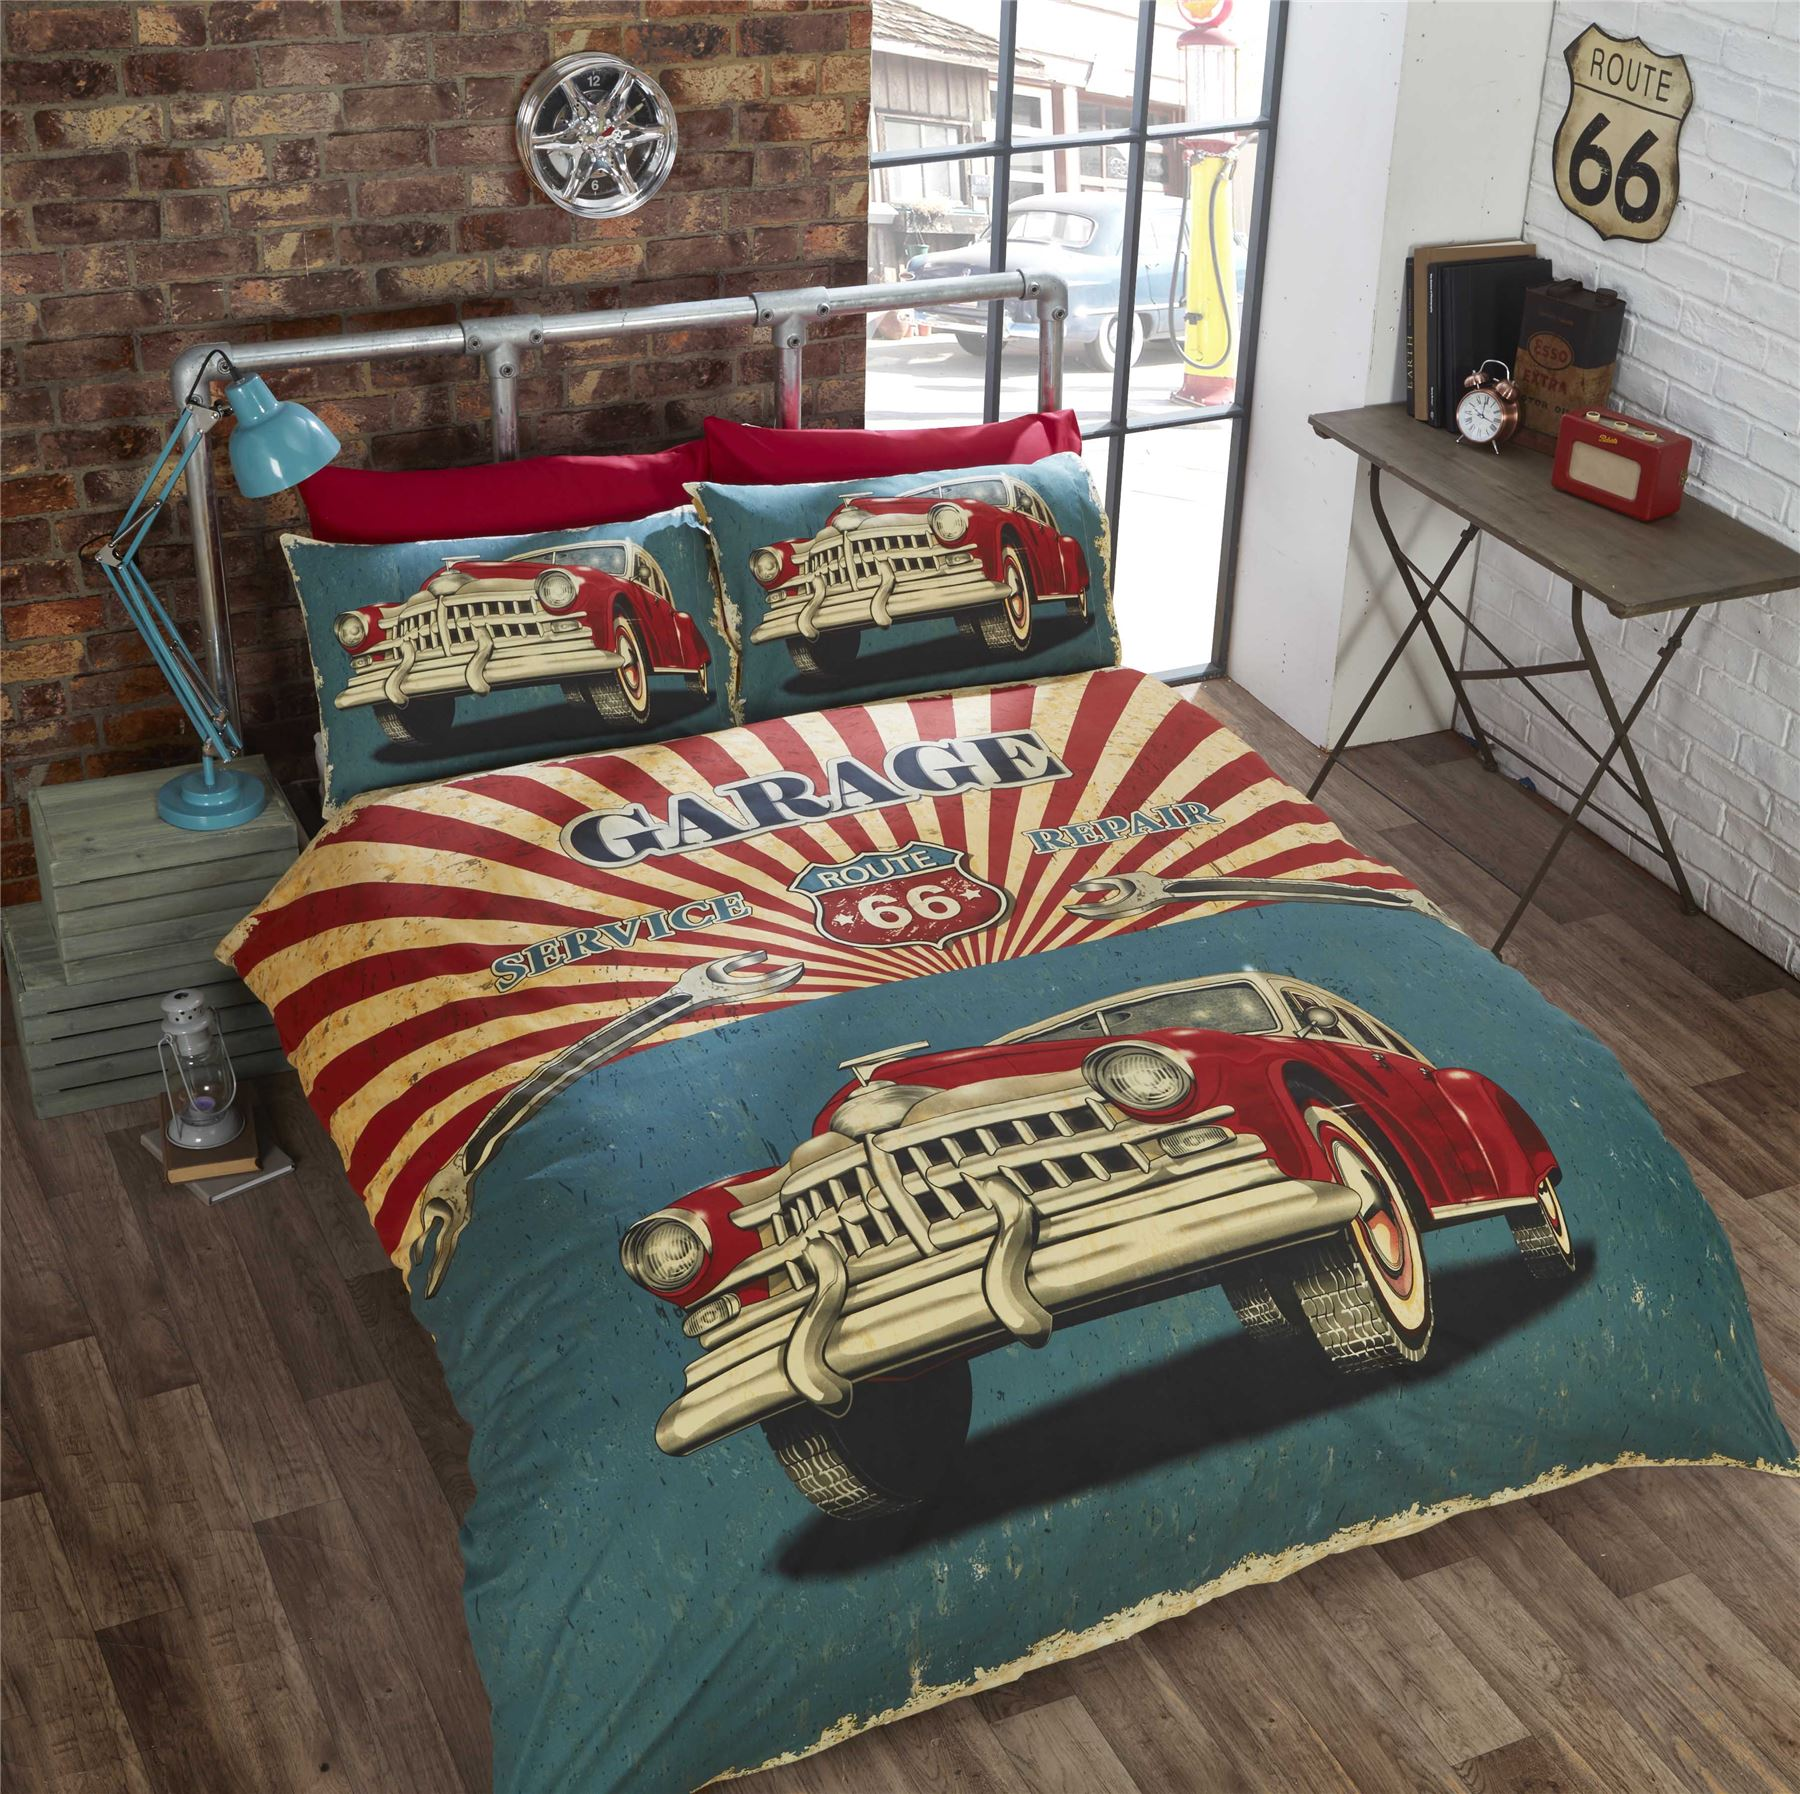 VINTAGE CAR AMERICAN FLAG ROUTE 66 RED TEAL KING SIZE DUVET COVER